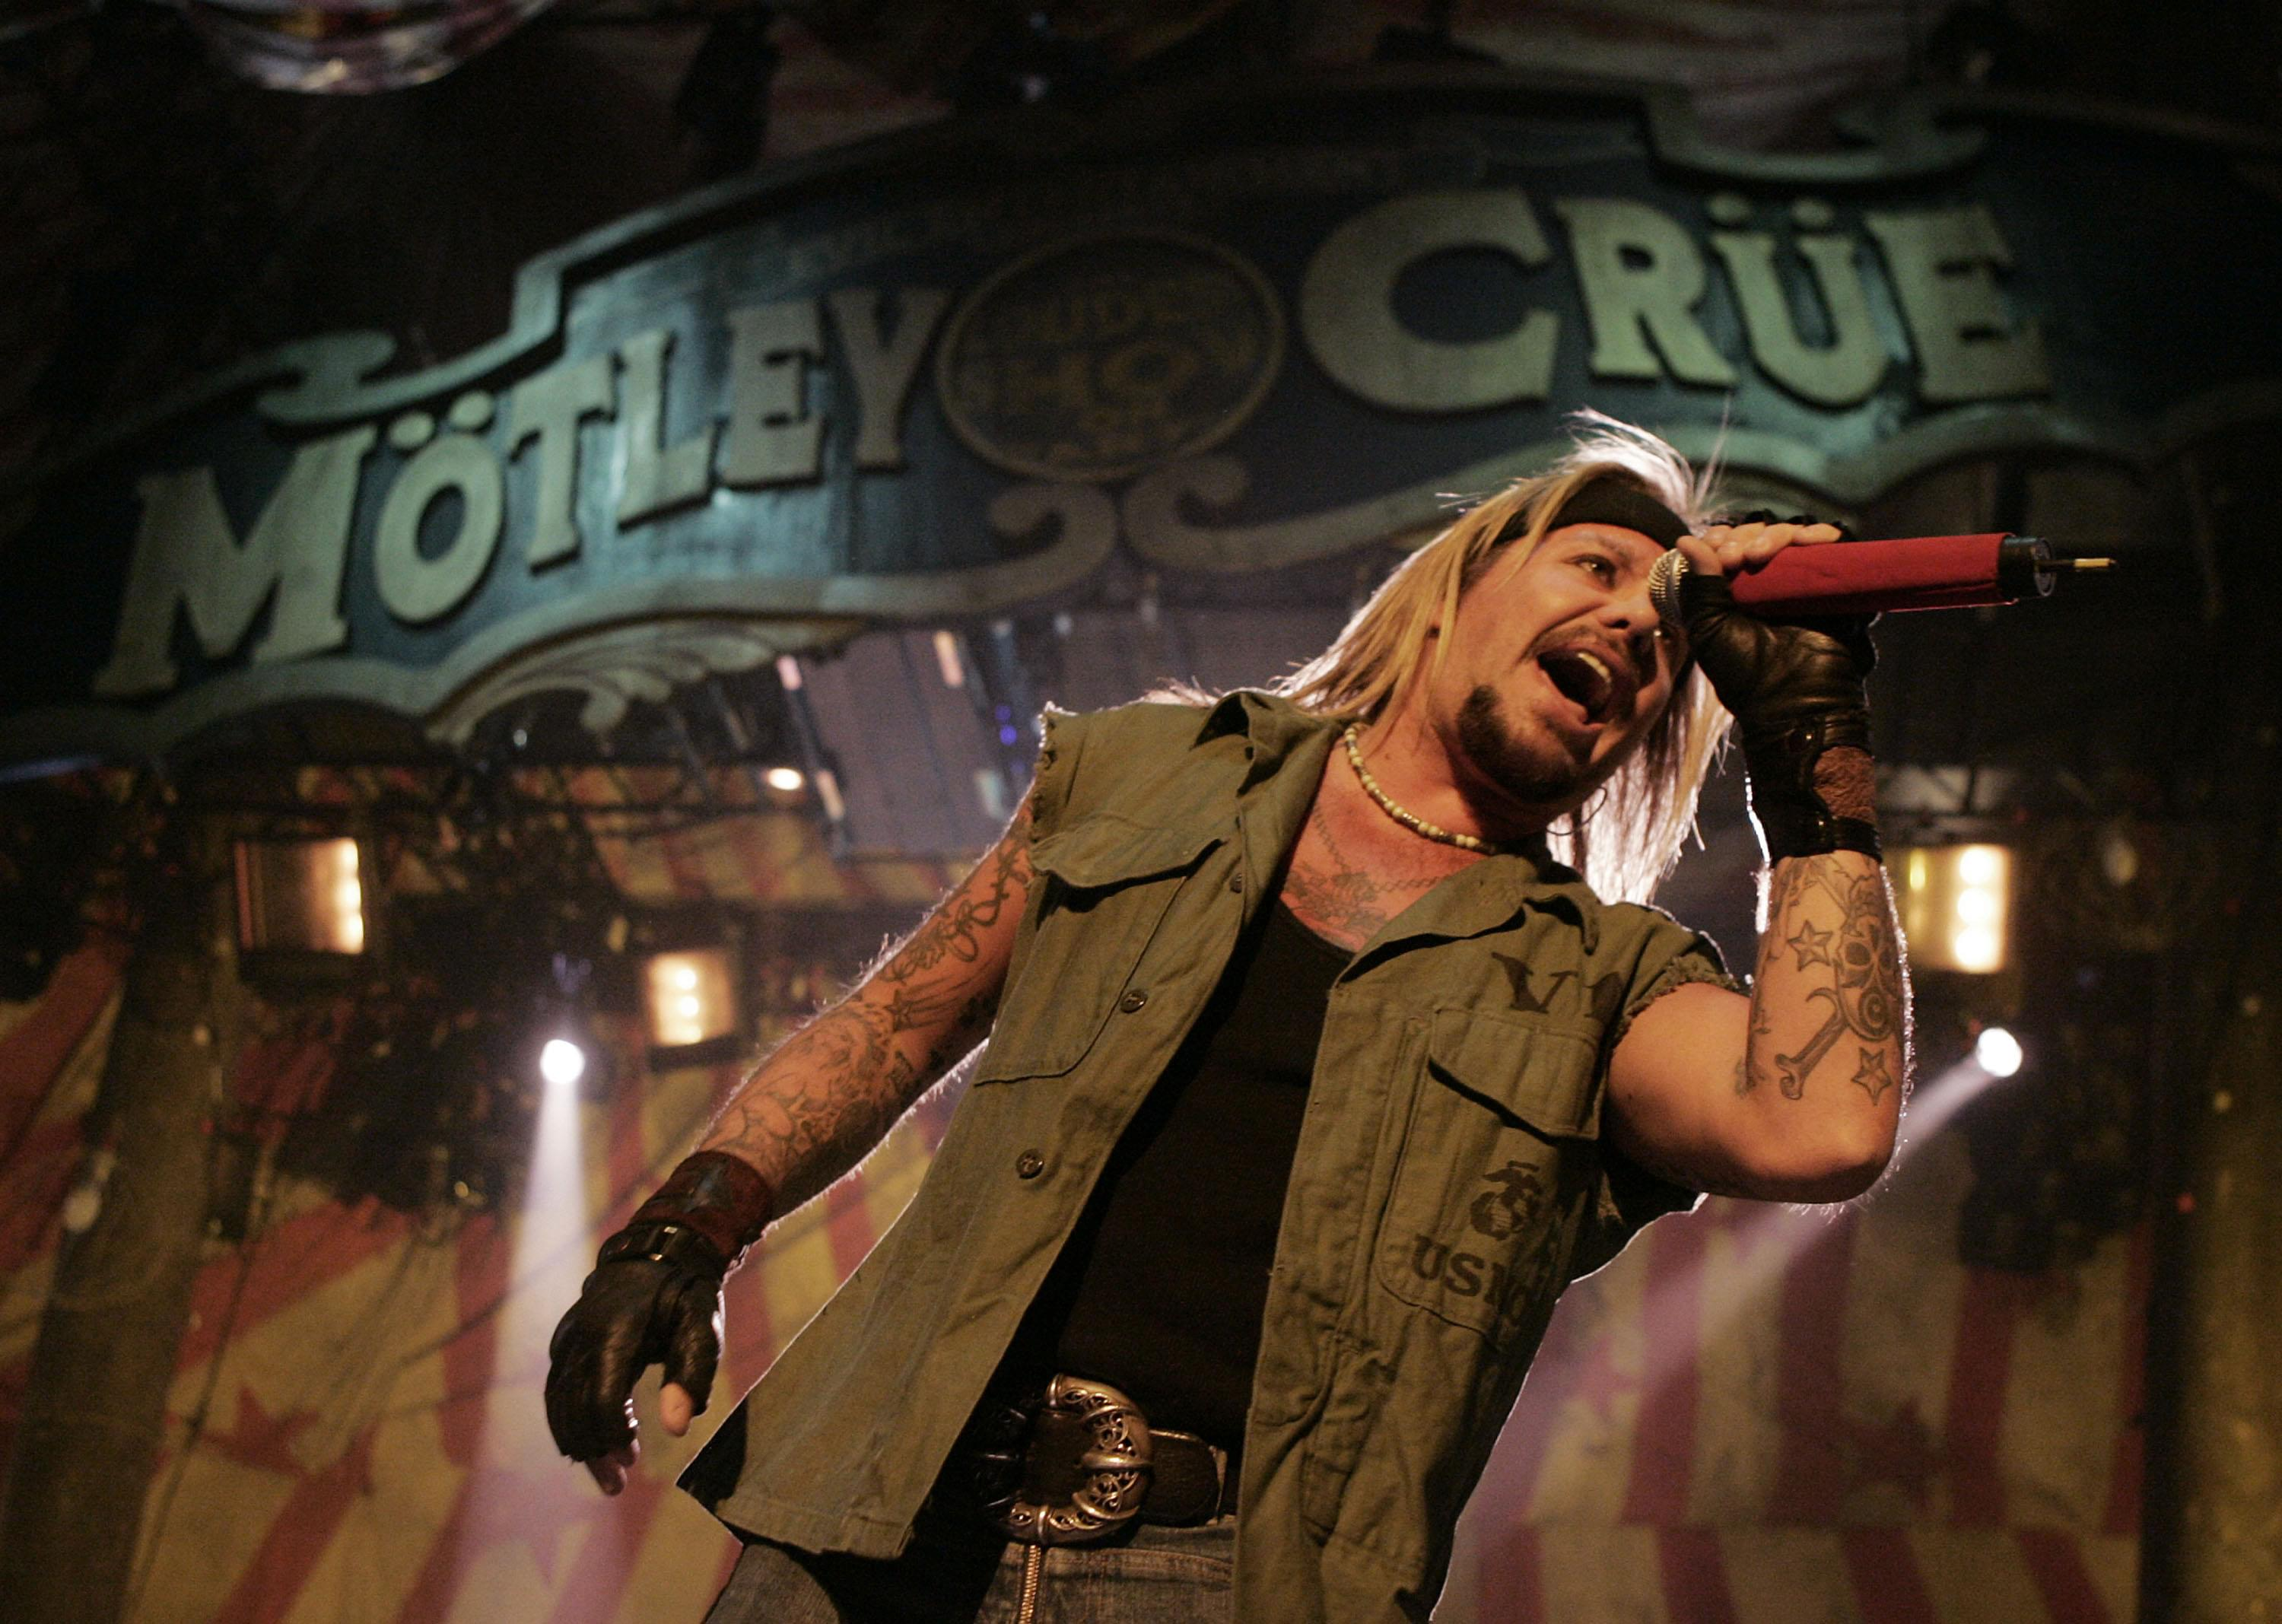 It's Official—Motley Crue Releases Their 2020 Stadium Tour Dates